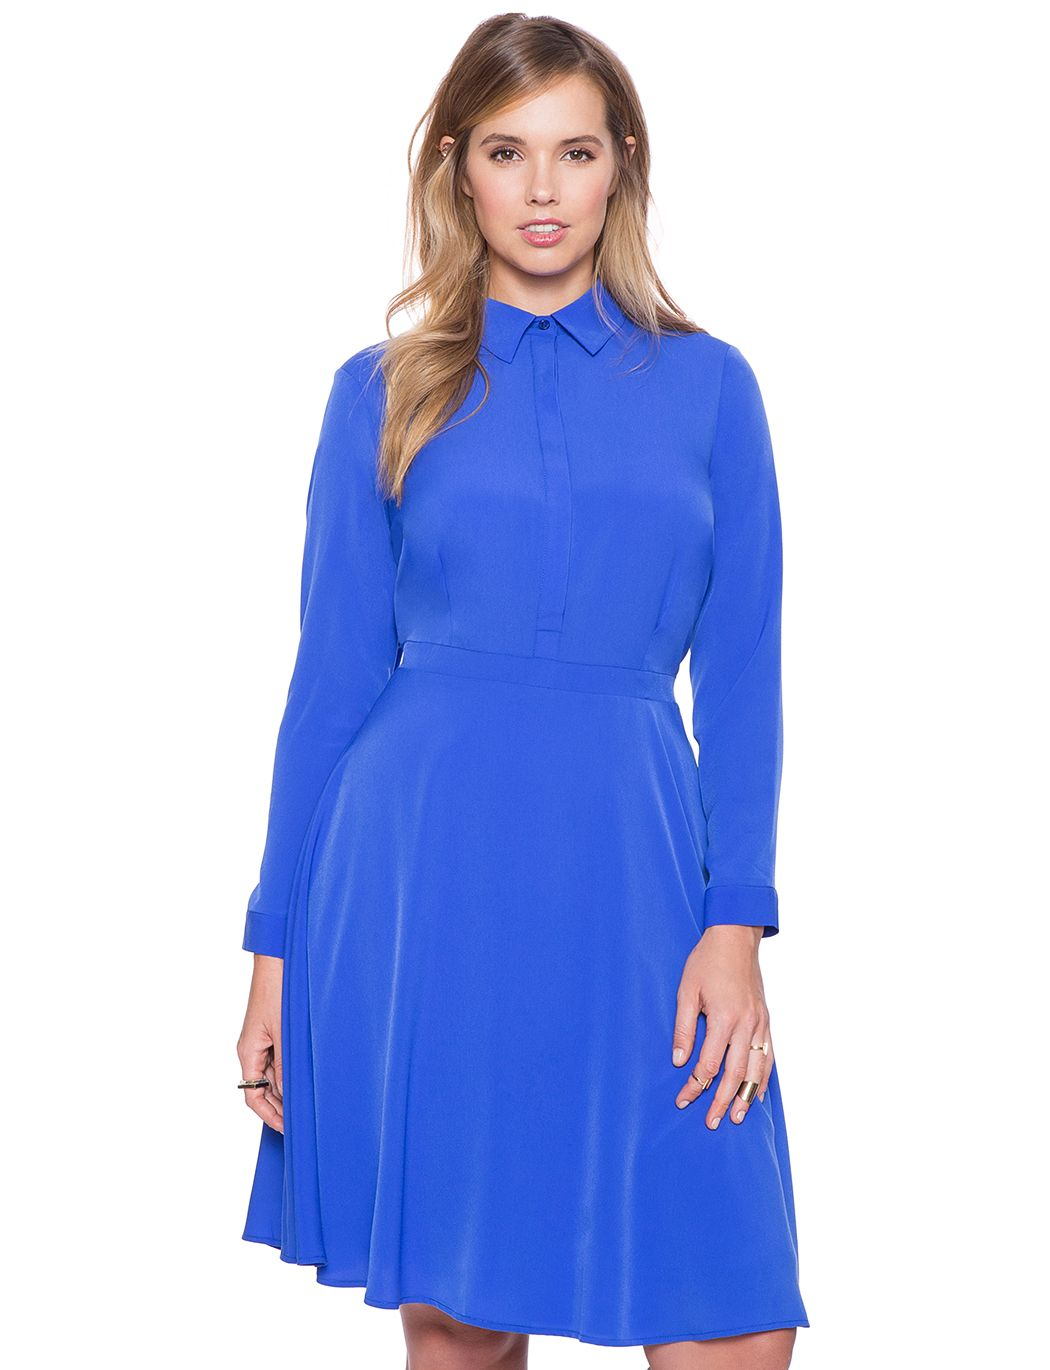 Silky Fit And Flare Shirt Dress Dazzling Blue Style Ish Dresses